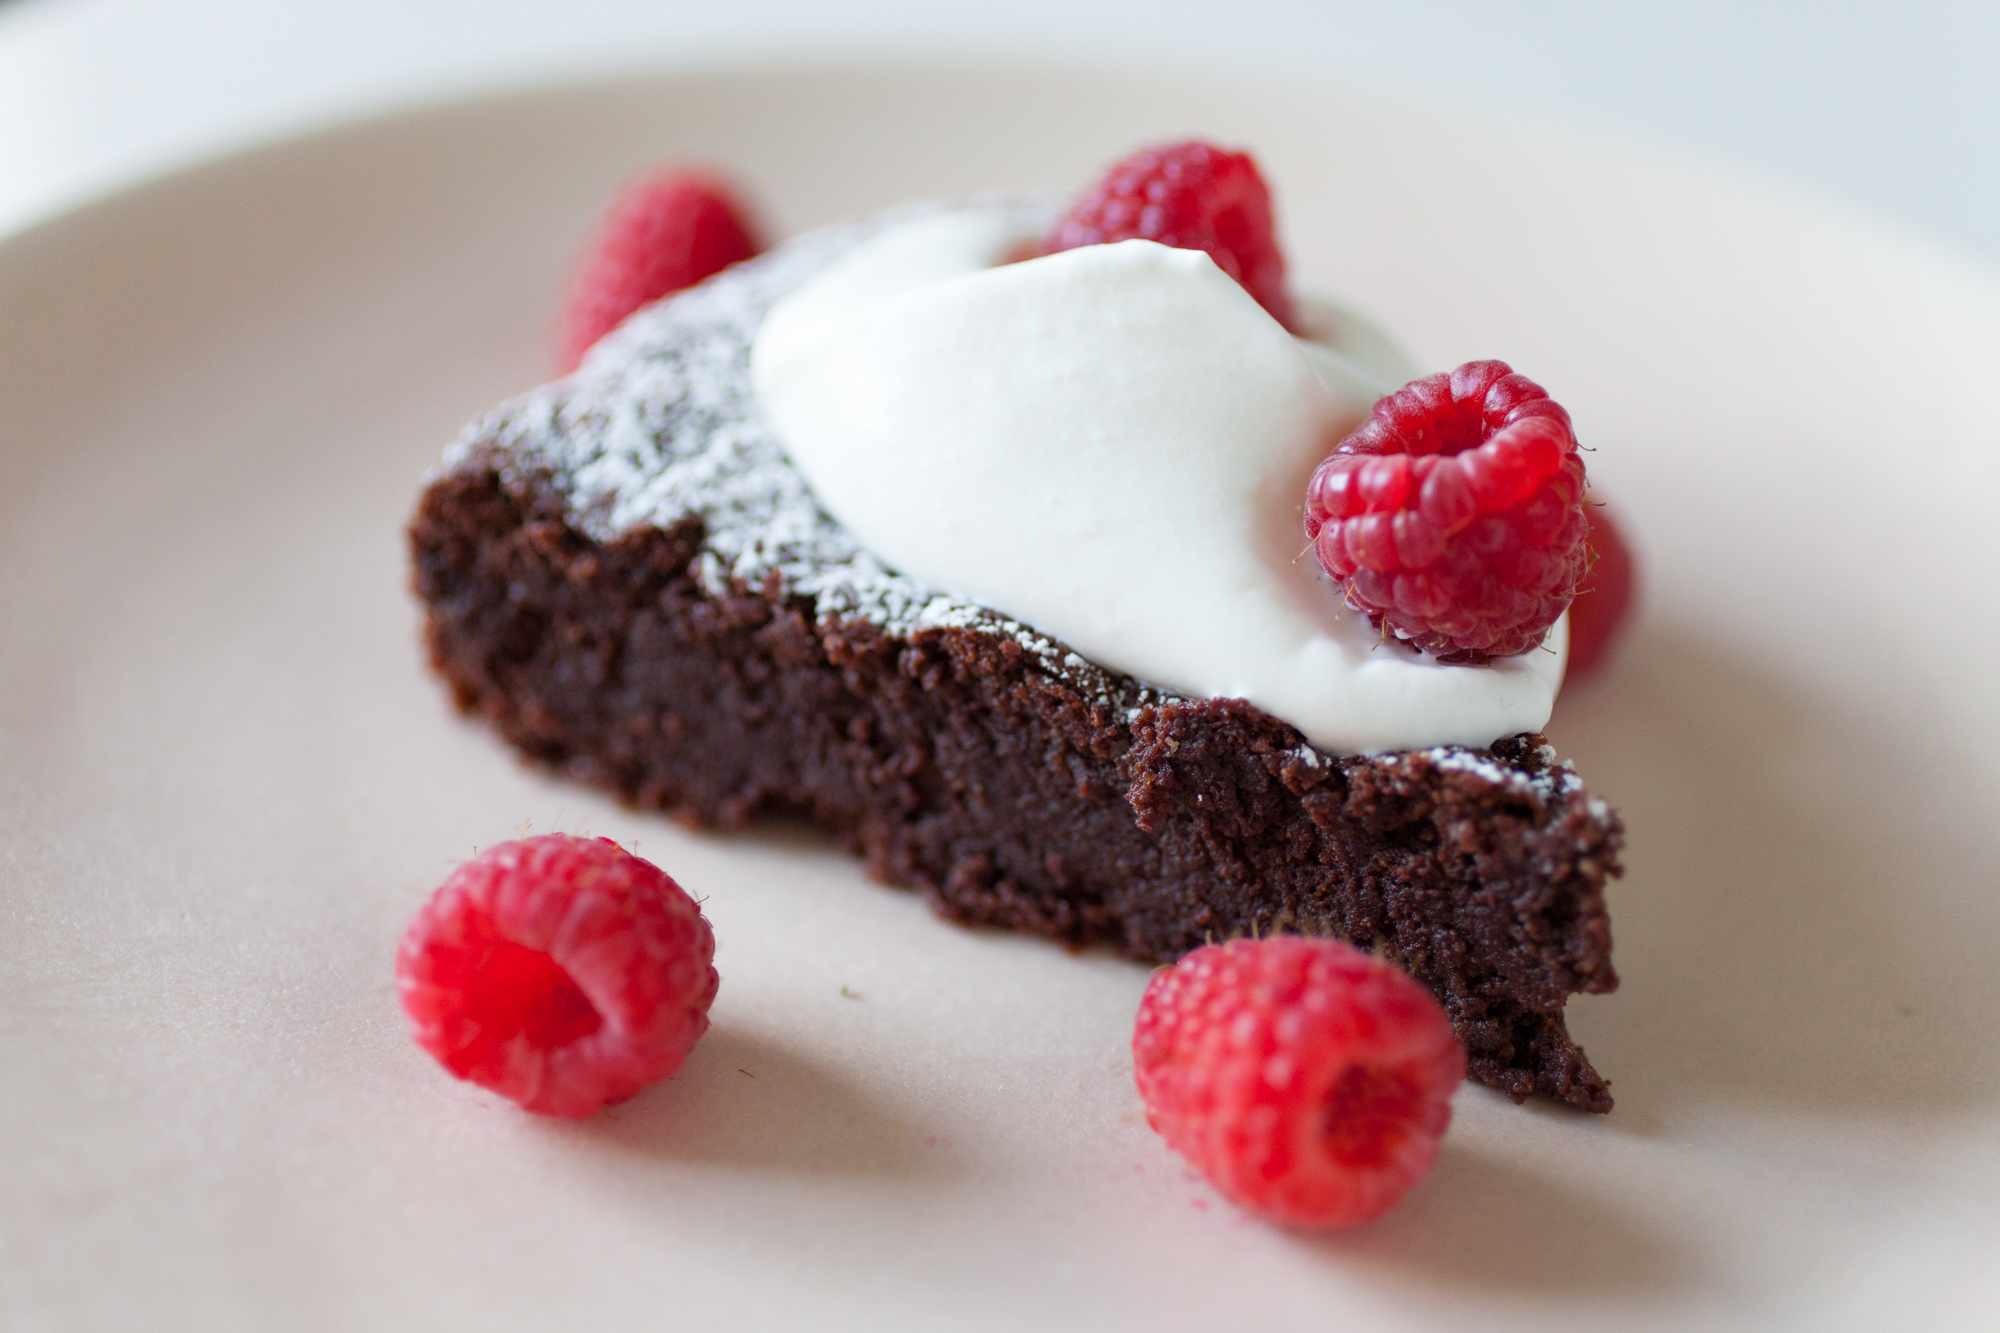 Chocolate cake recipe with olive oil